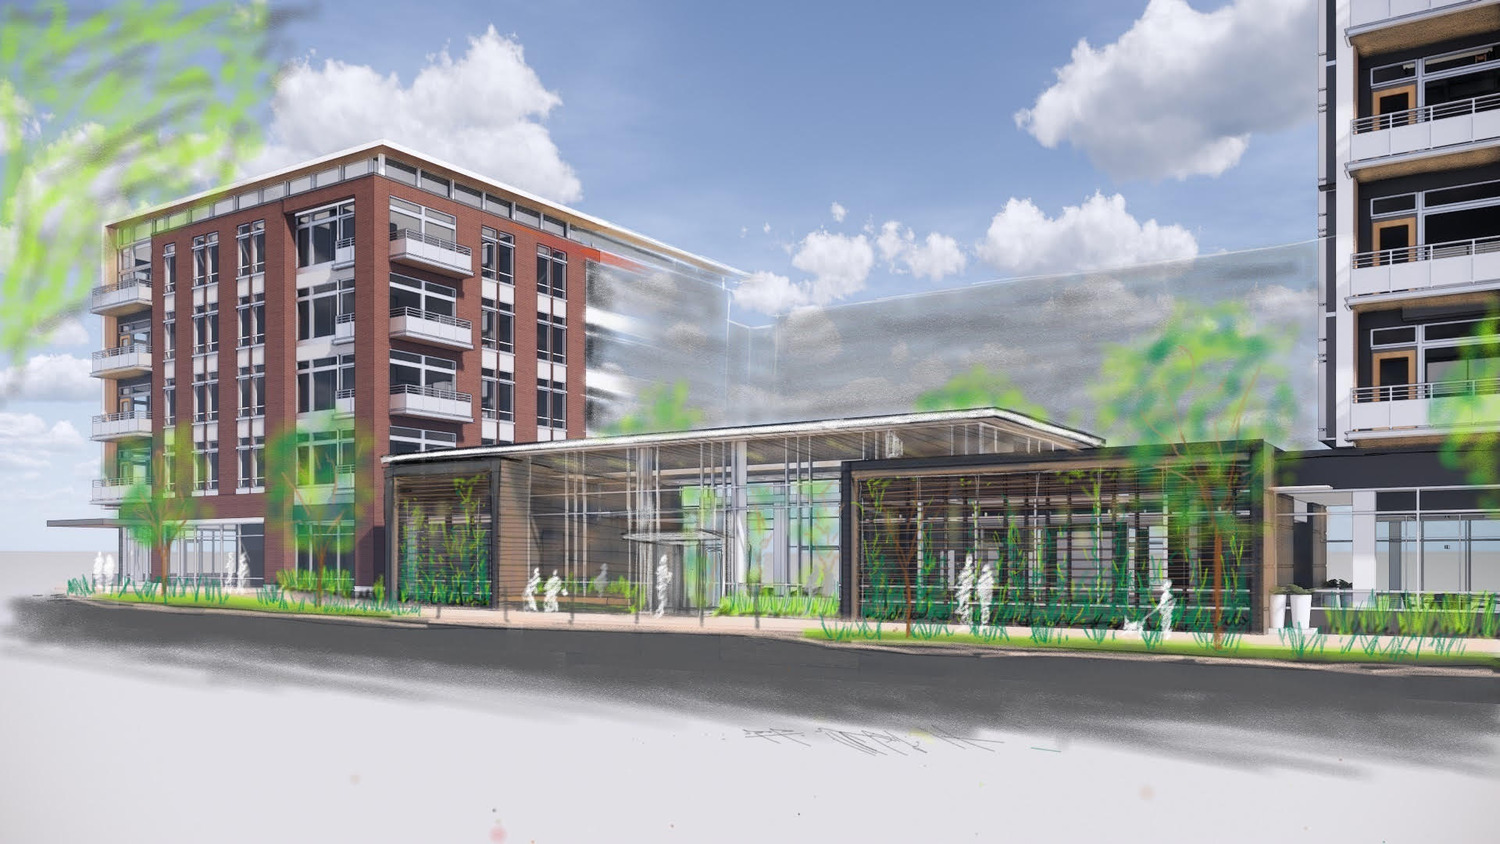 CBG builds Brentford at the Mile, a Seven-Story, 411-Unit Mixed-Use LEED® Community with Expansive Courtyard and Parking in McLean, VA - Image #1